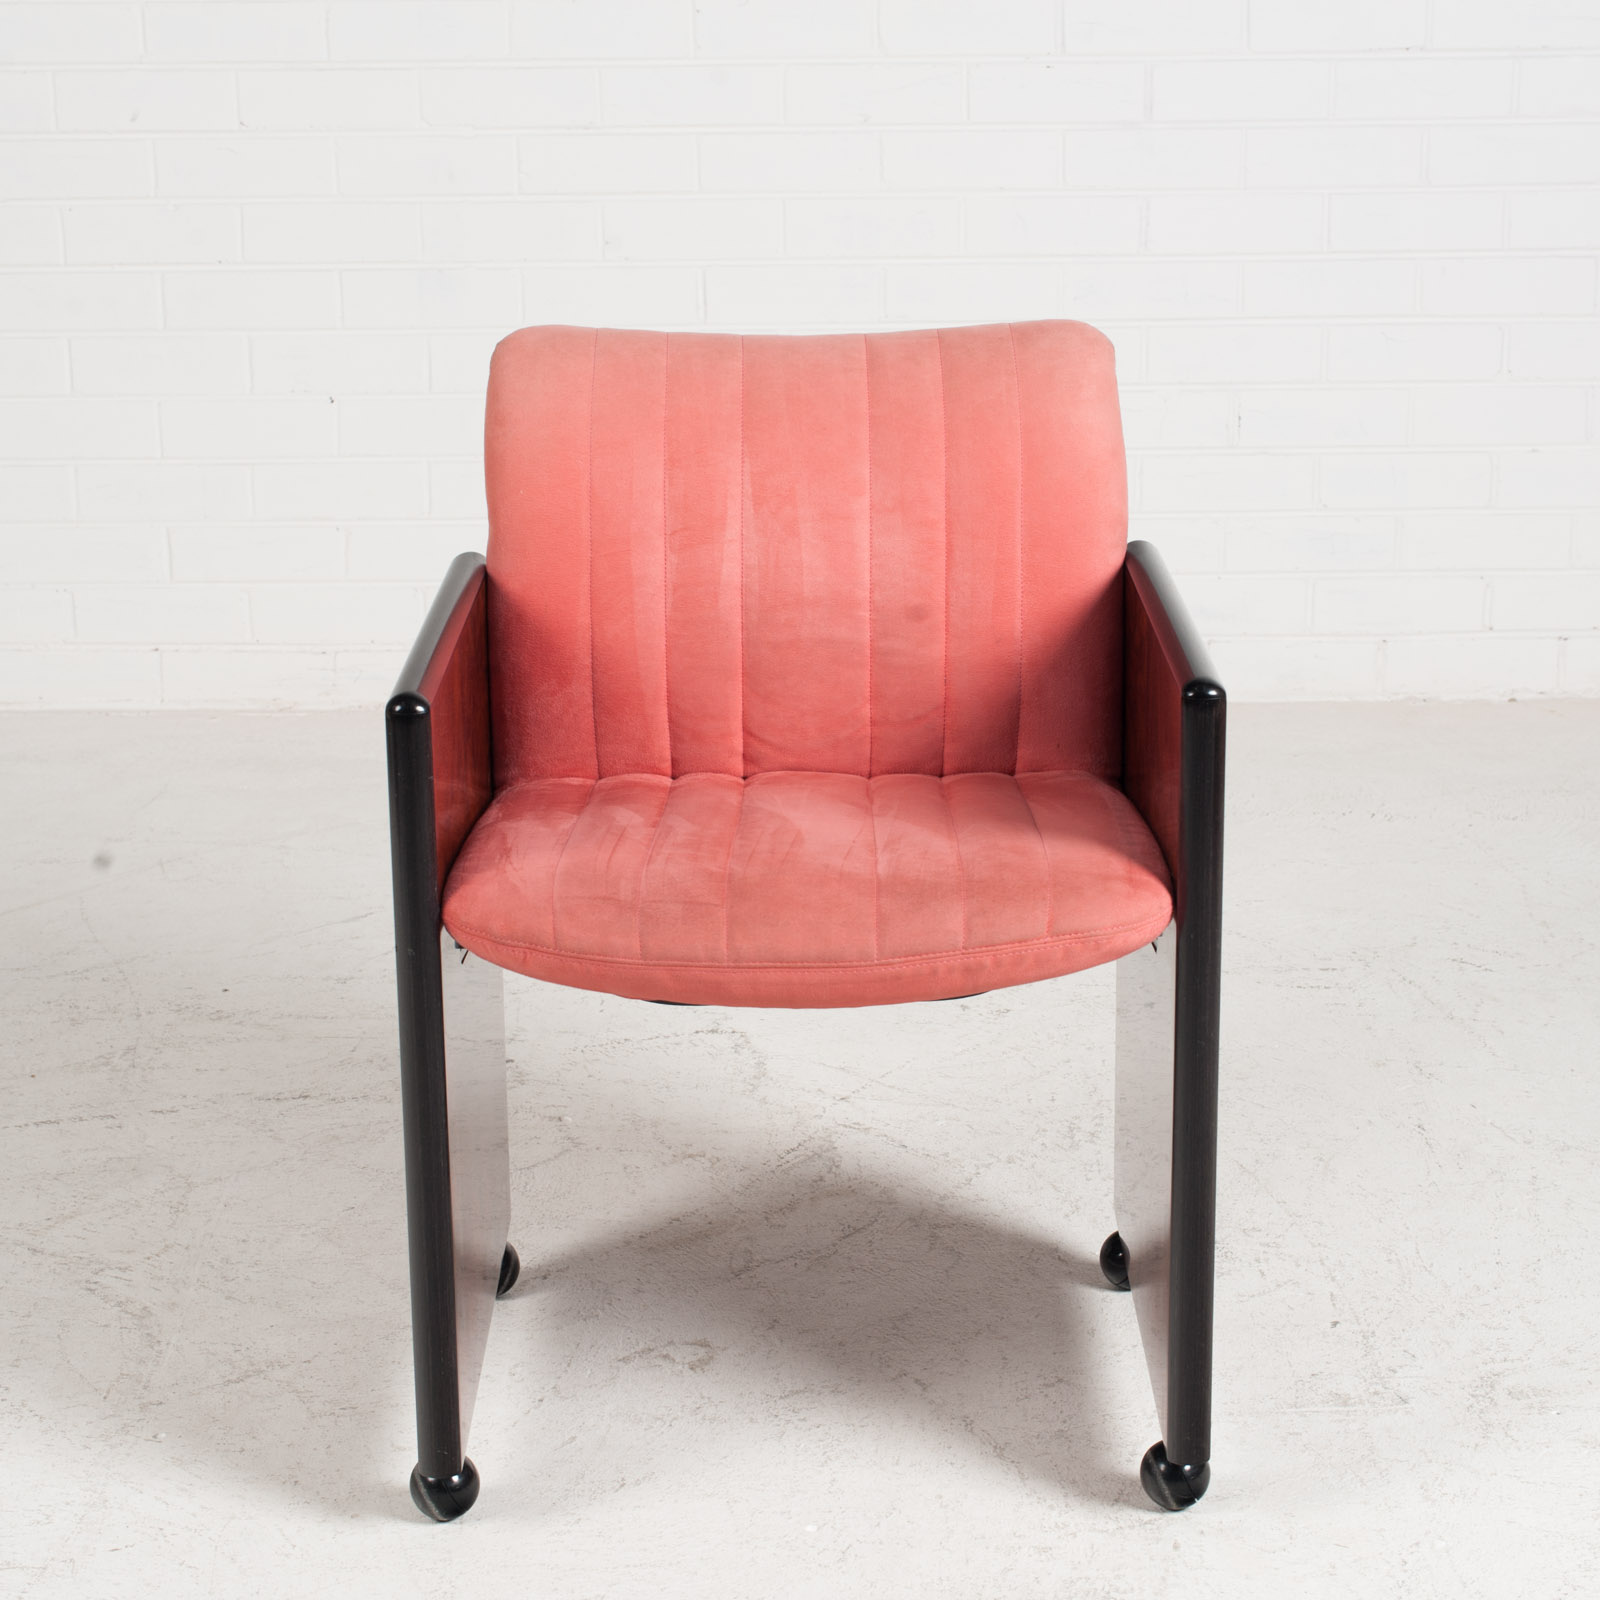 Set Of 8 Chairs By Kazuhide Takahama In Pink Upholstery 1950s Italy 02